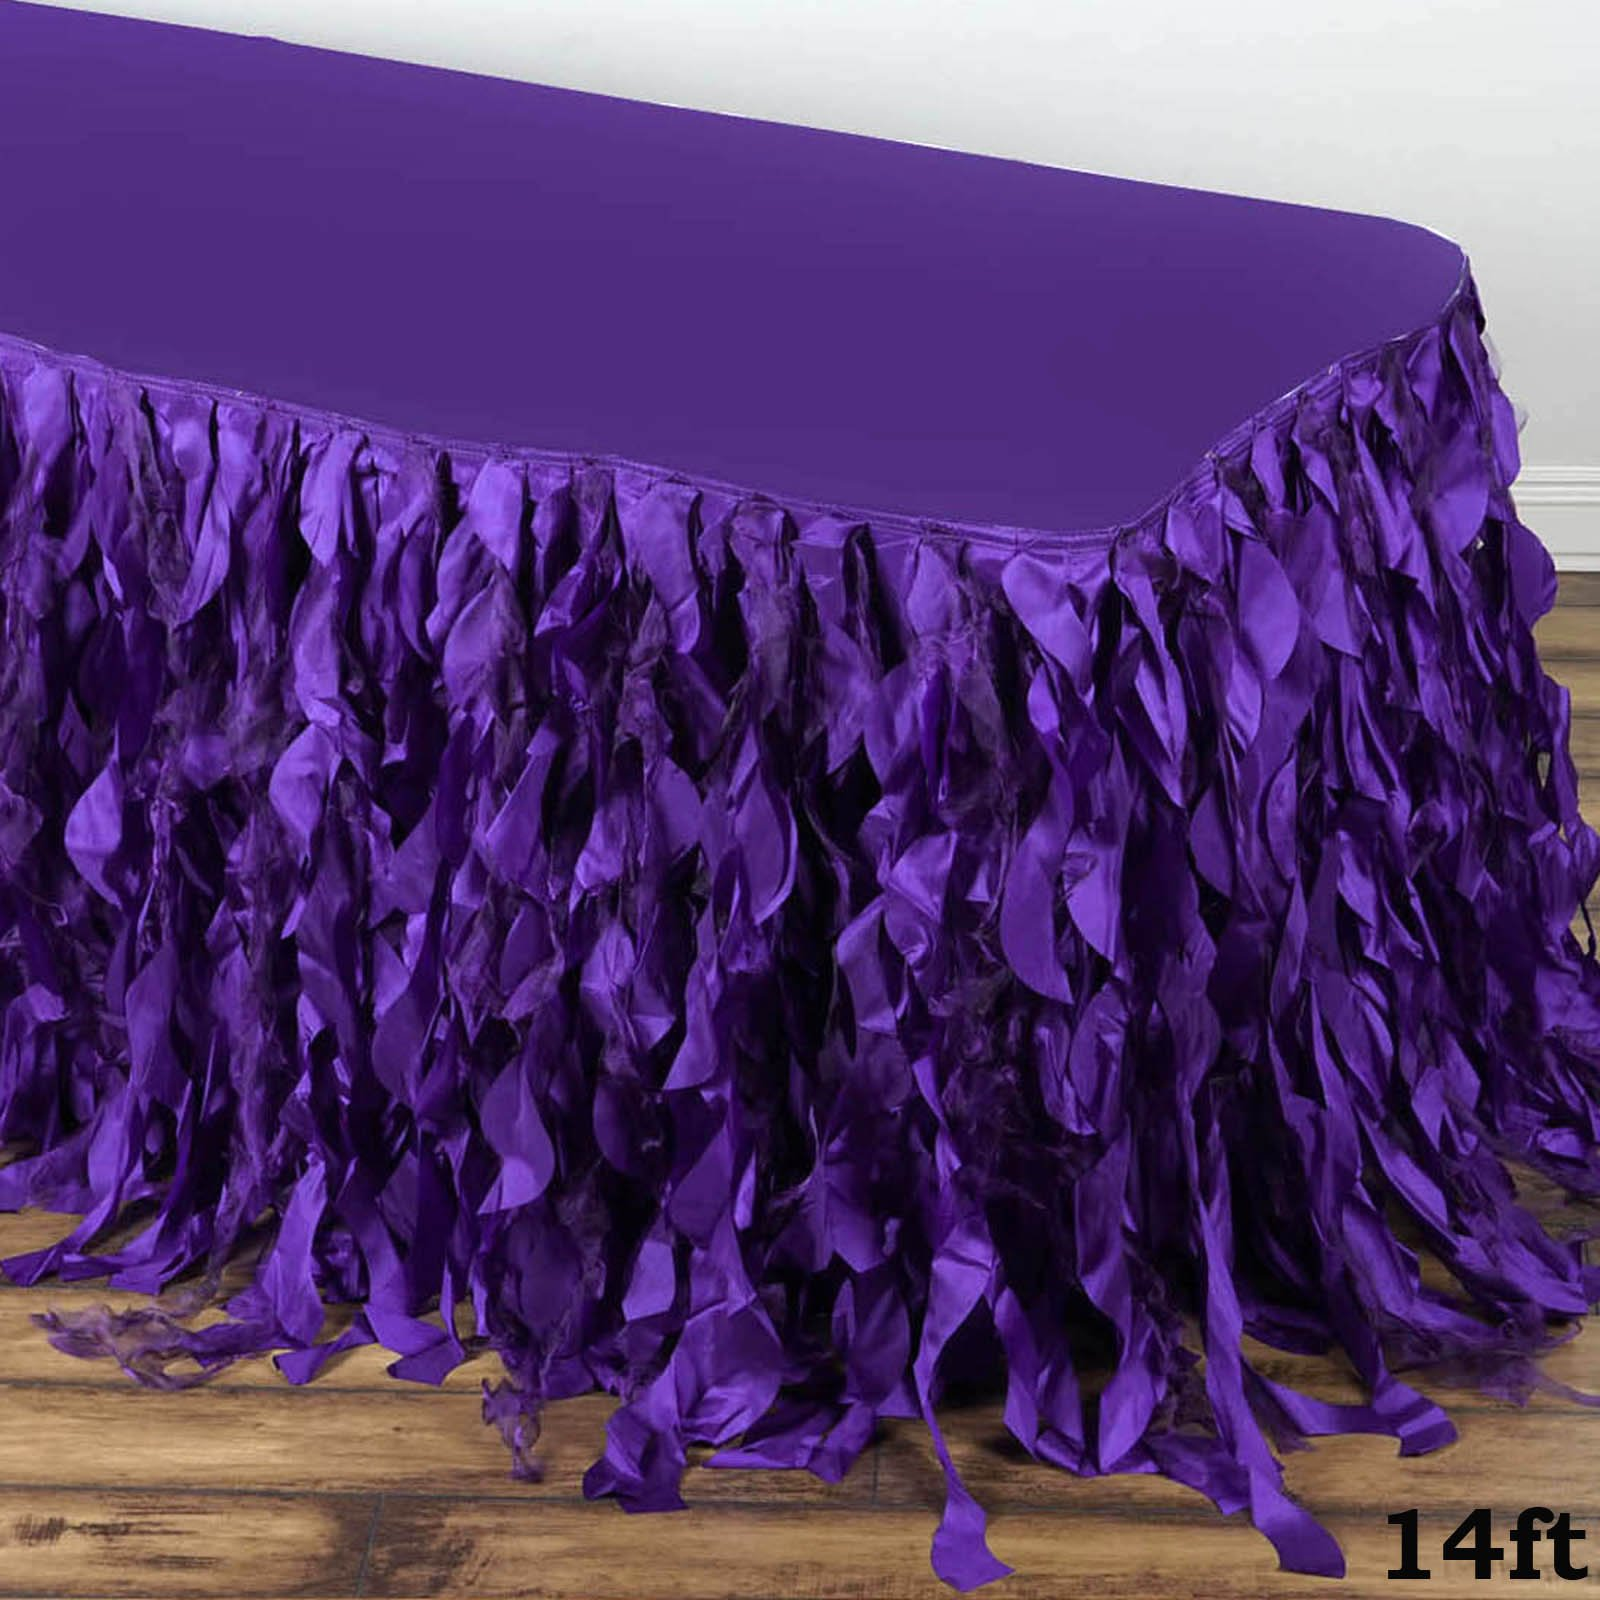 Efavormart 14ft Enchanting Curly Willow Taffeta Table Skirt for Kitchen Dining Catering Wedding Birthday Party Events - Purple by Efavormart.com (Image #1)